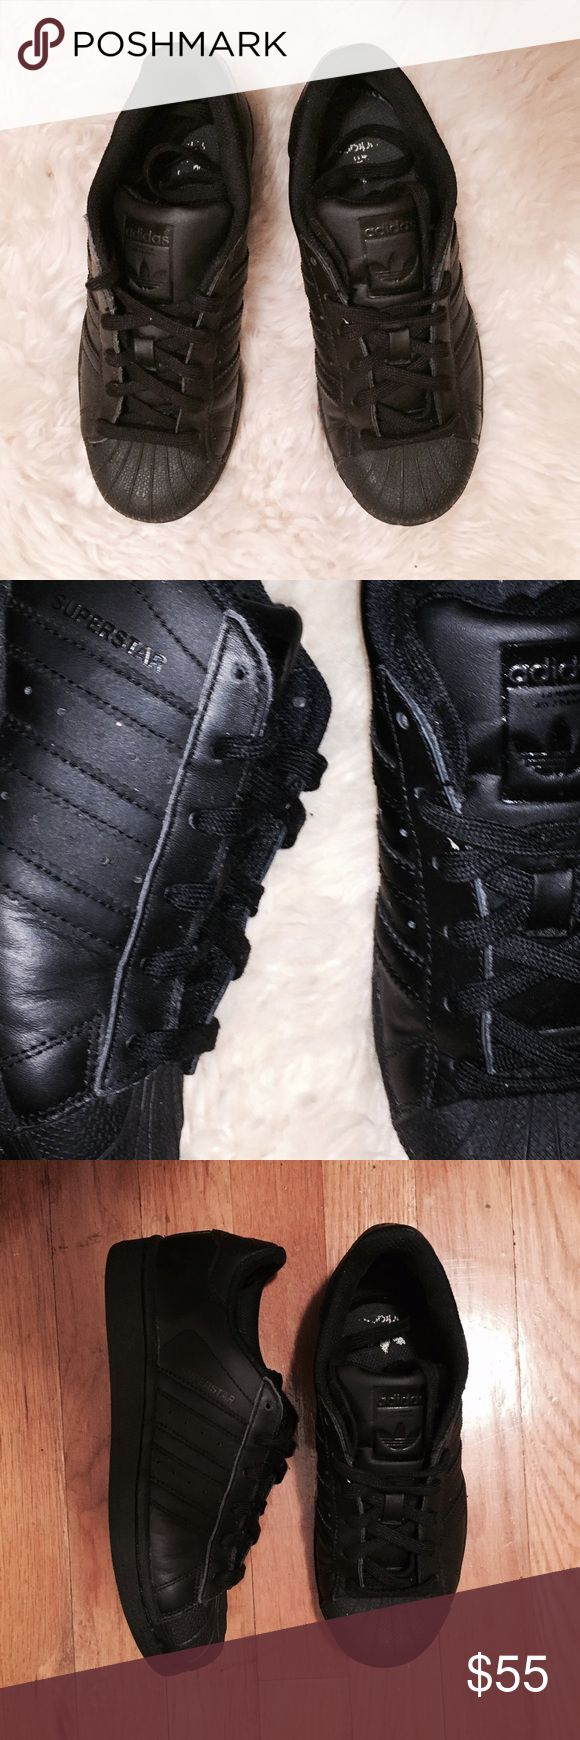 black Adidas superstars all black adidas superstars. brand new, only tried on in the house. rubber shell toe. they are a size 4 in kids, which is a size 6 in women's. adidas normally runs a size big. i am a 7.5 in women's and these fit but are too tight around the toe. i recommend them for a women's size 6-7! let me know if you have any questions. reasonable offers considered. Adidas Shoes